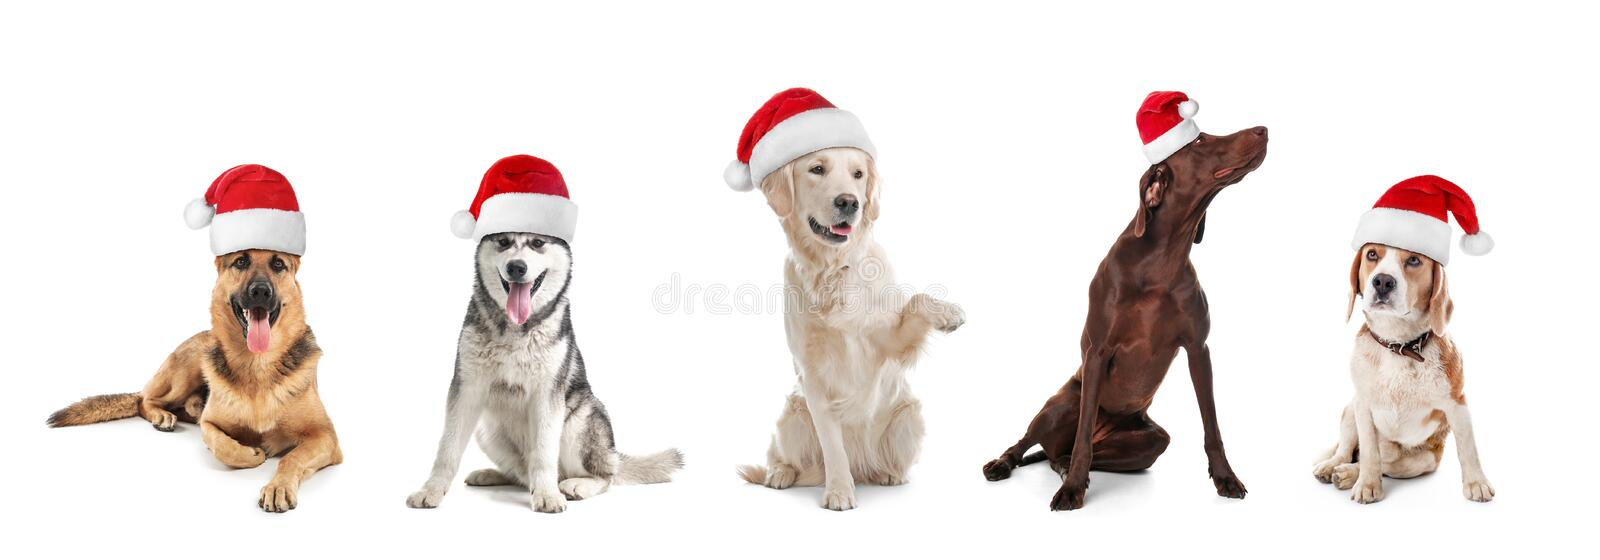 Row of cute dogs with Santa Claus hats stock photography